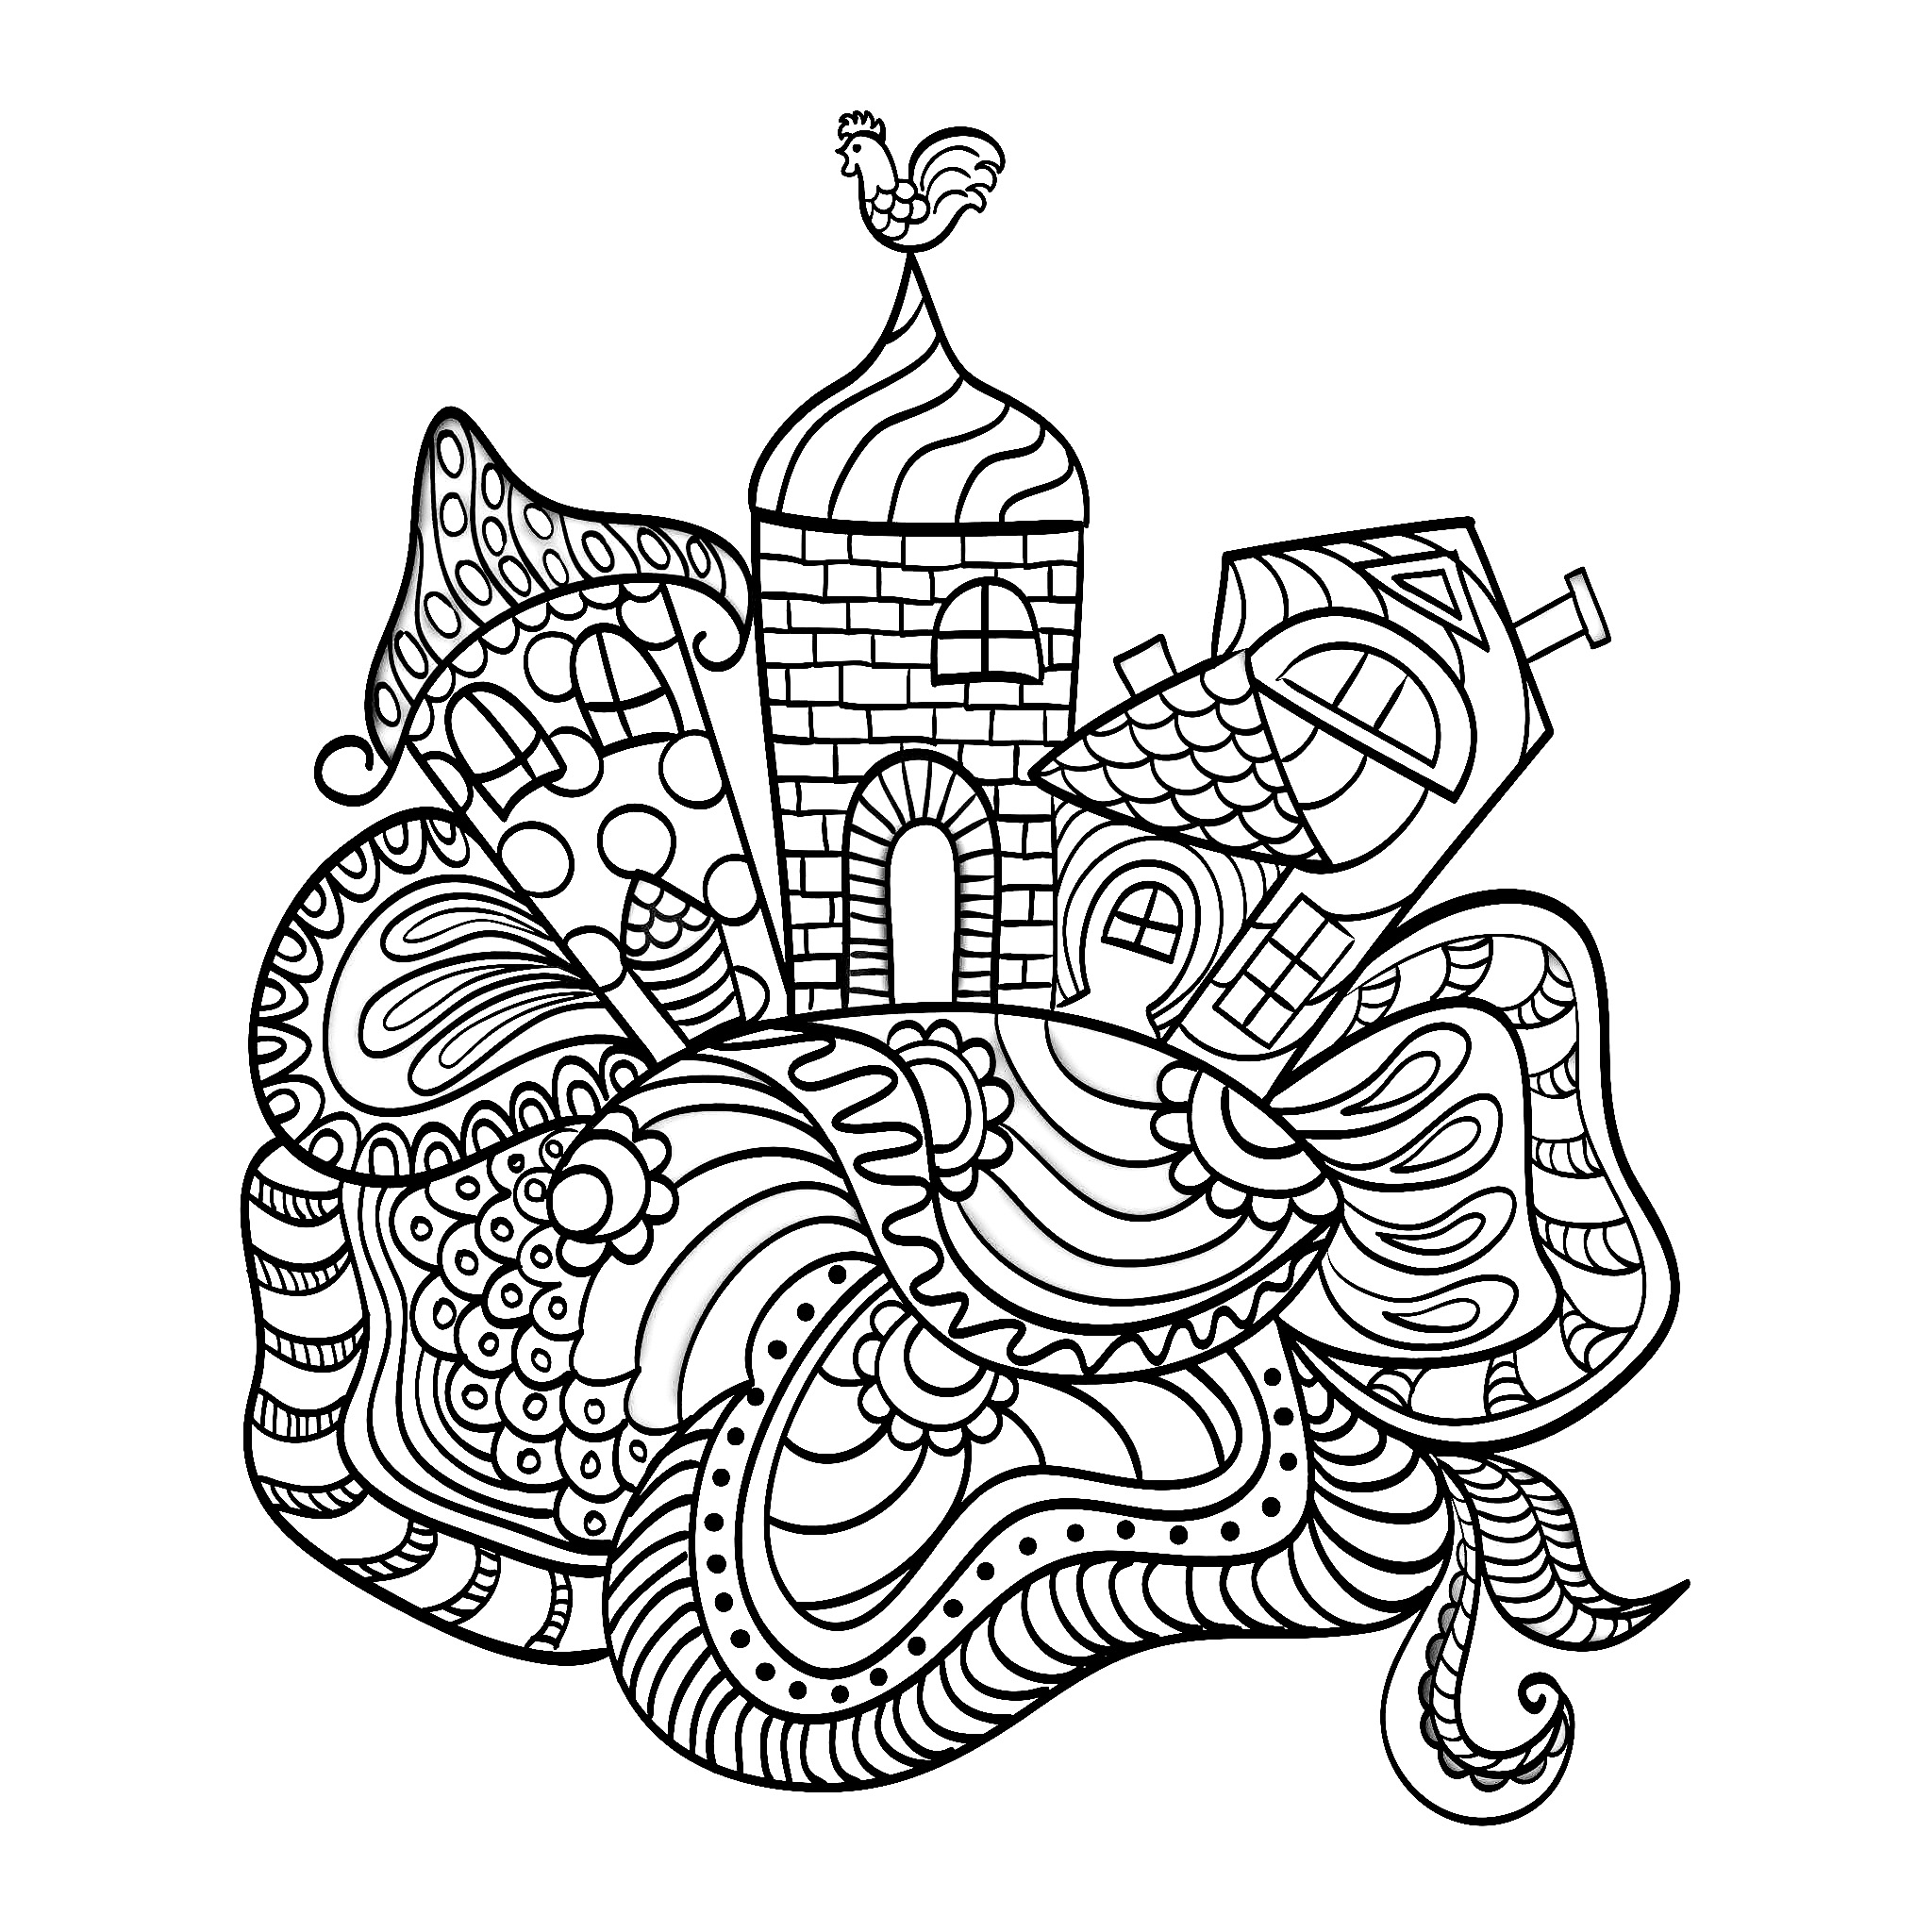 coloring house pictures 25 free printable haunted house coloring pages for kids pictures house coloring 1 2